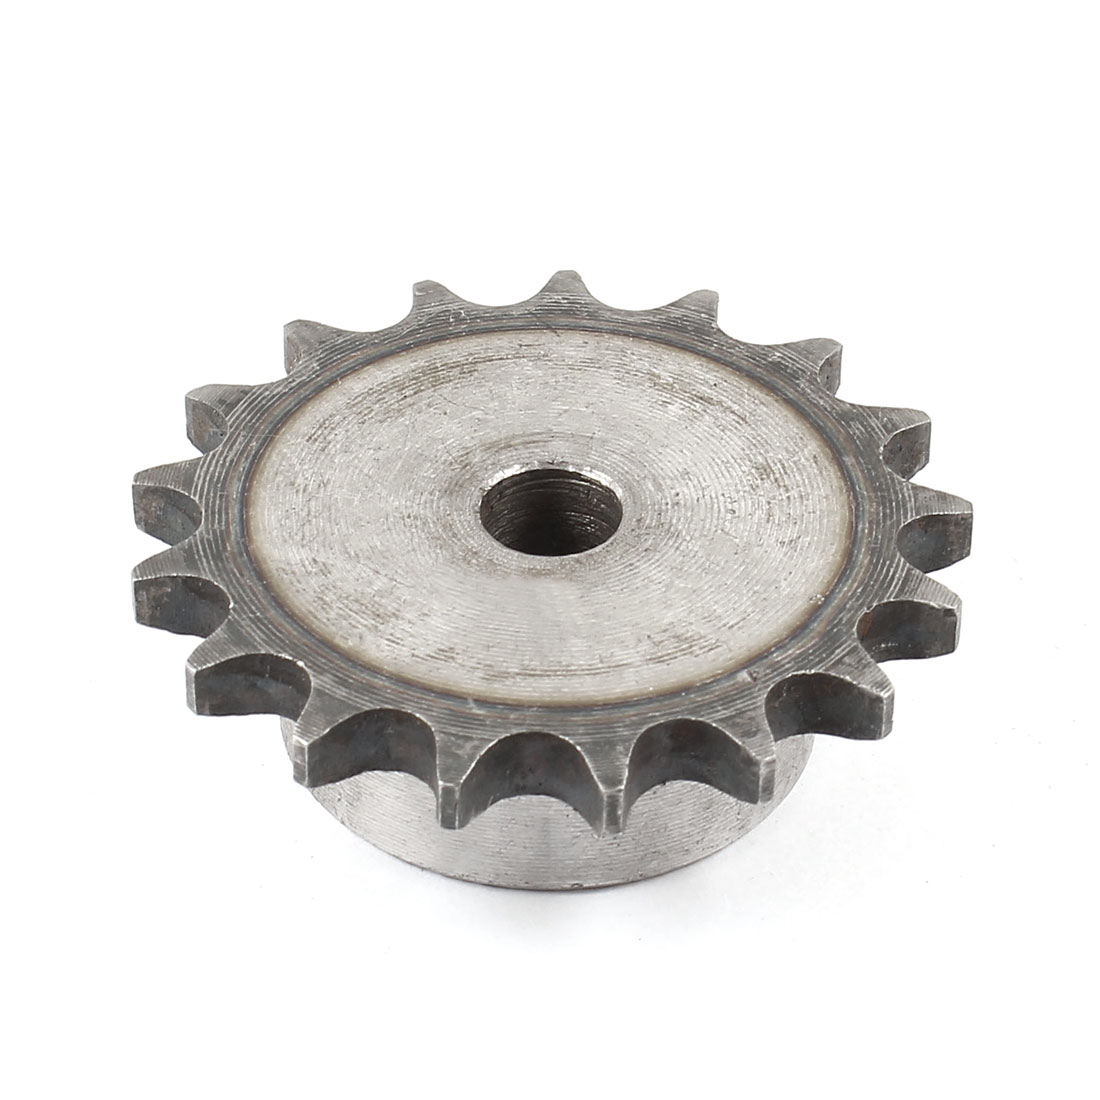 UXCELL Replacement 12Mm Shaft Dia 17 Teeth Metal Spiral Bevel Gear<br><br>Aliexpress